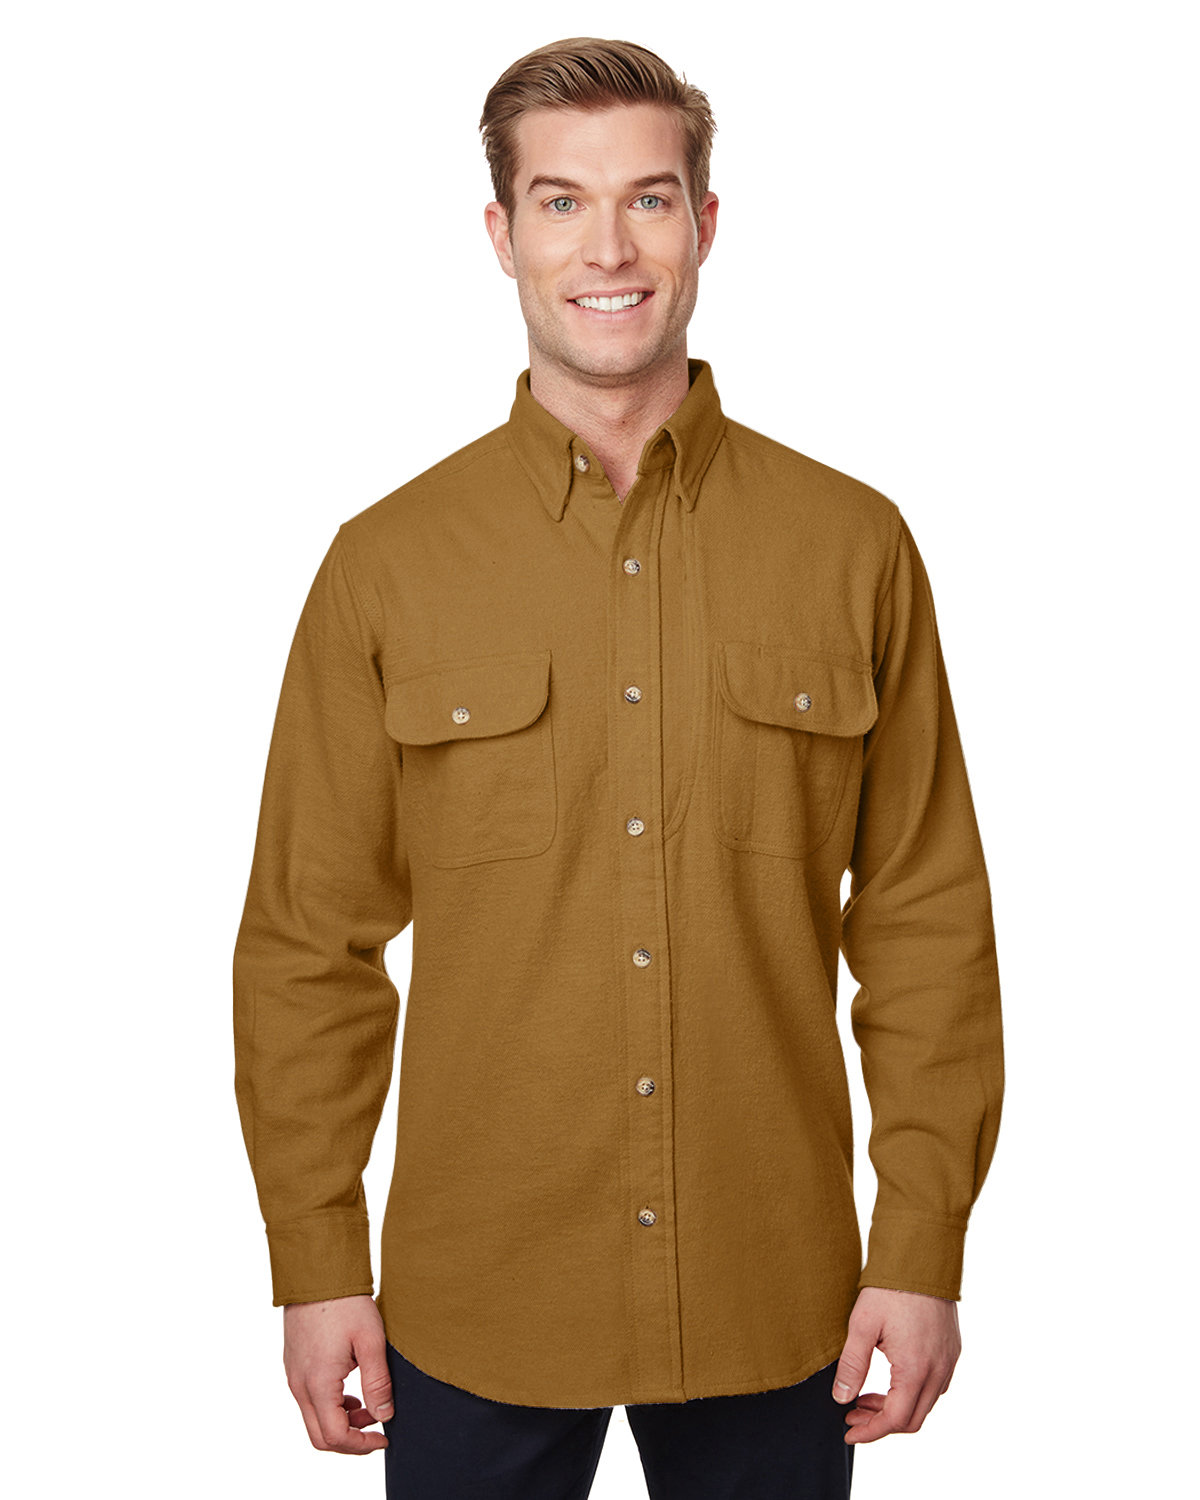 Men's Solid Chamois Shirt